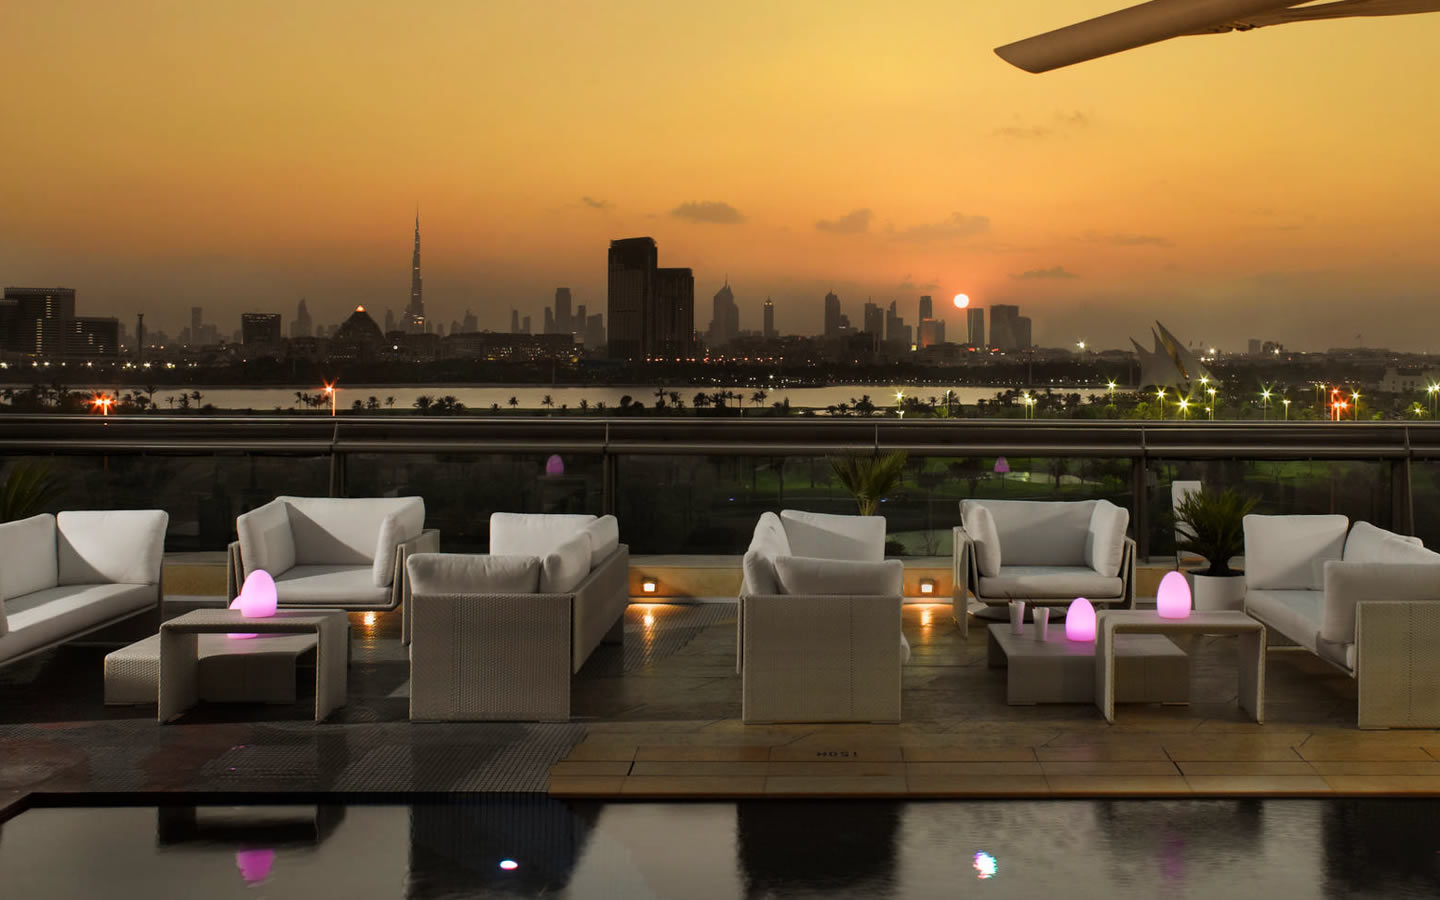 15 Best outdoor terraces in Dubai - Cu-ba, Jumeirah Creekside Hotel